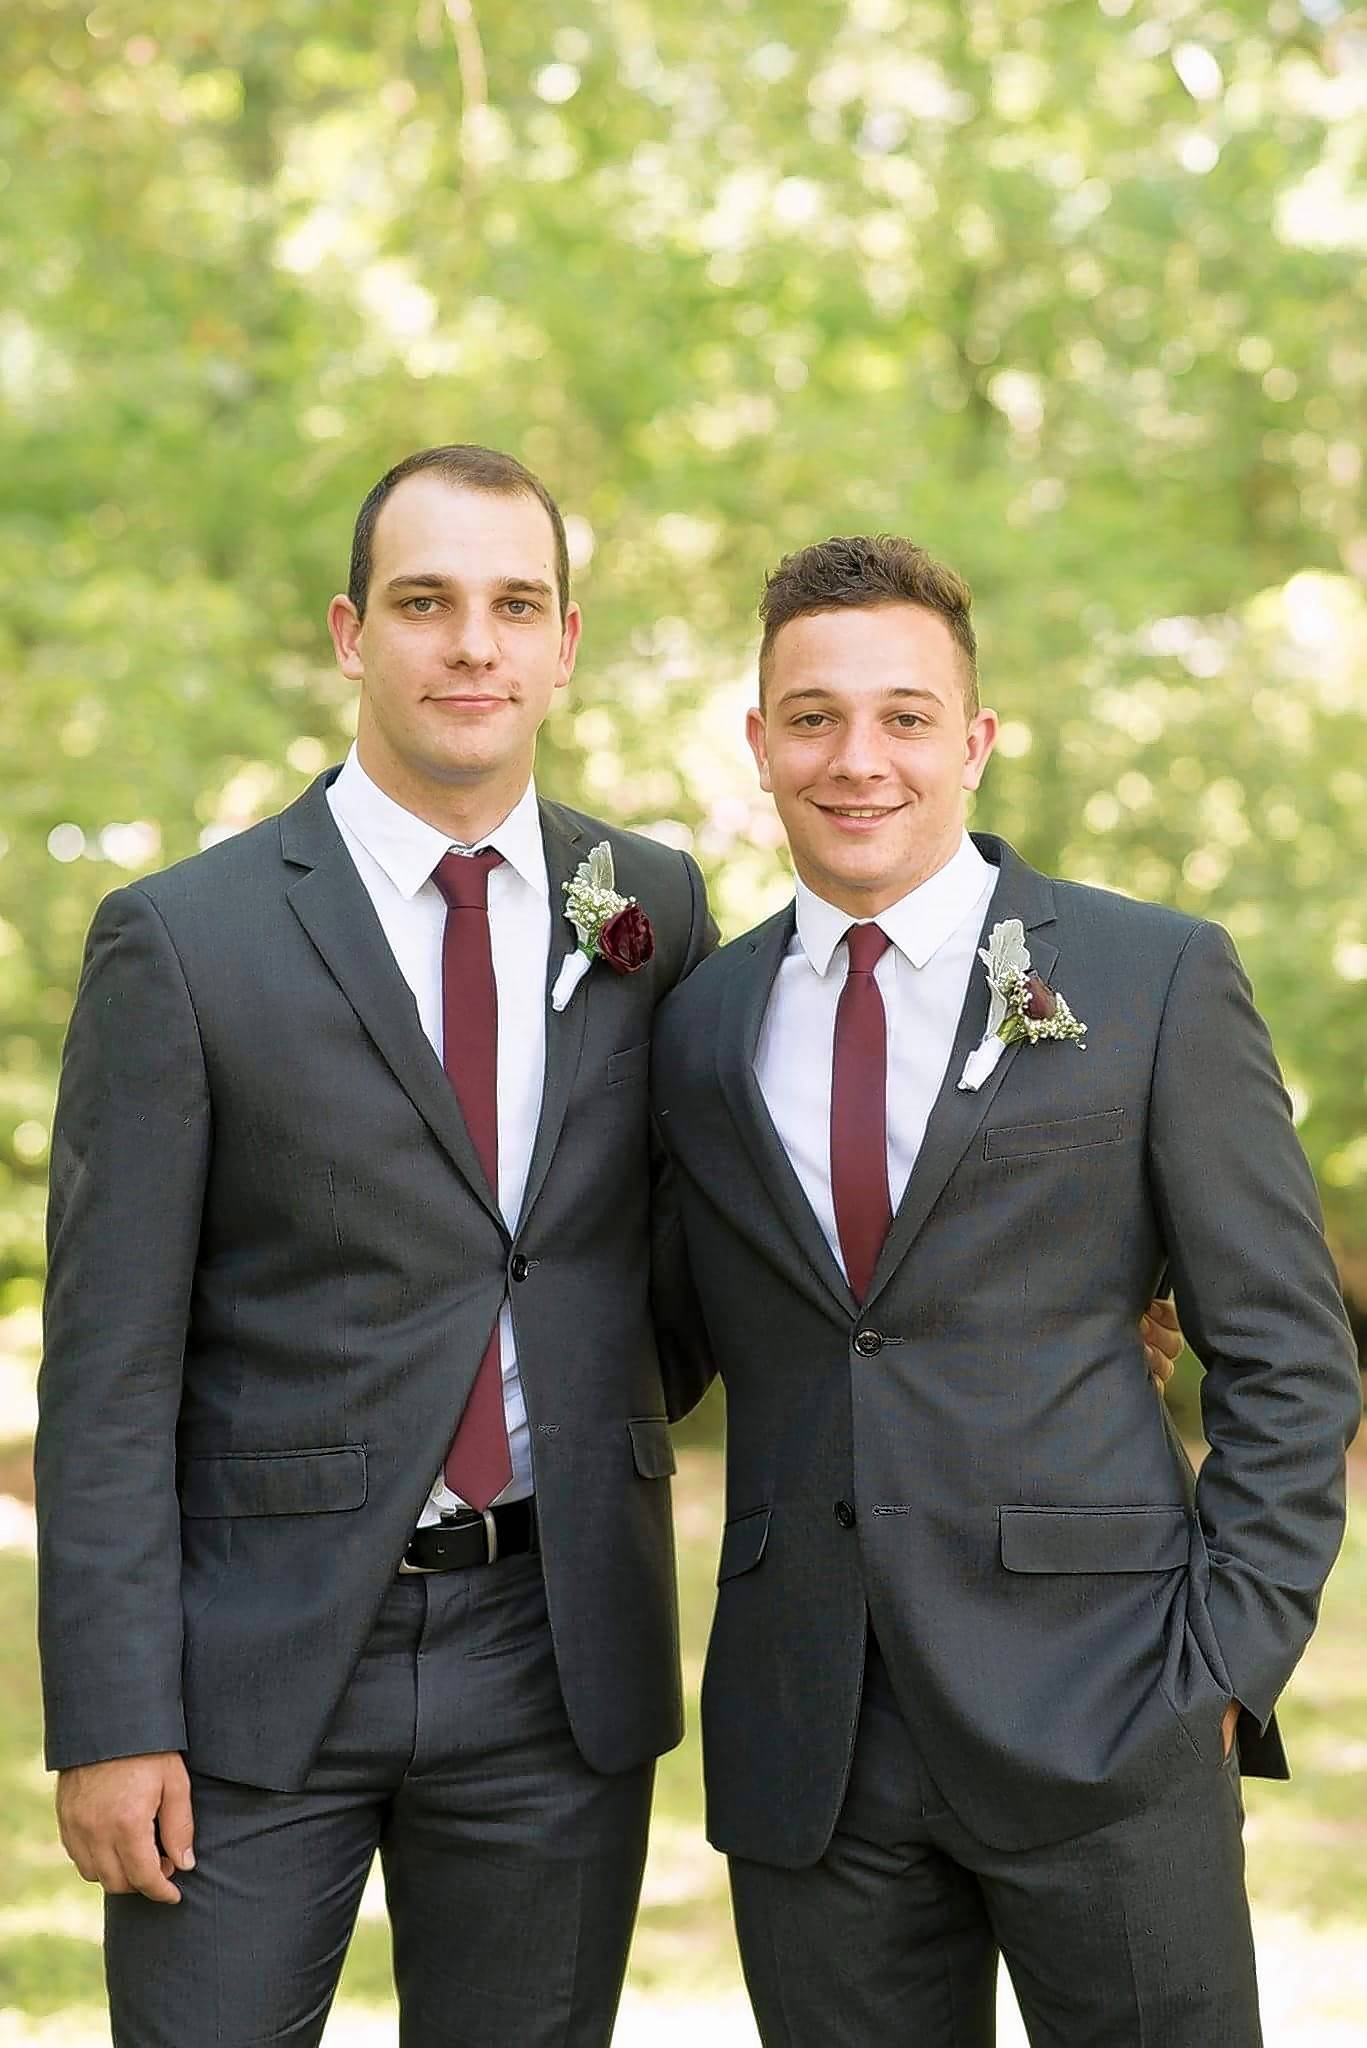 Ethan Roser, right, stands with his brother, Nathan Roser. Ethan was a freshman at Wheaton College and was studying theology. He died Saturday after being accidentally struck during a hammer throw event at a track and field meet.